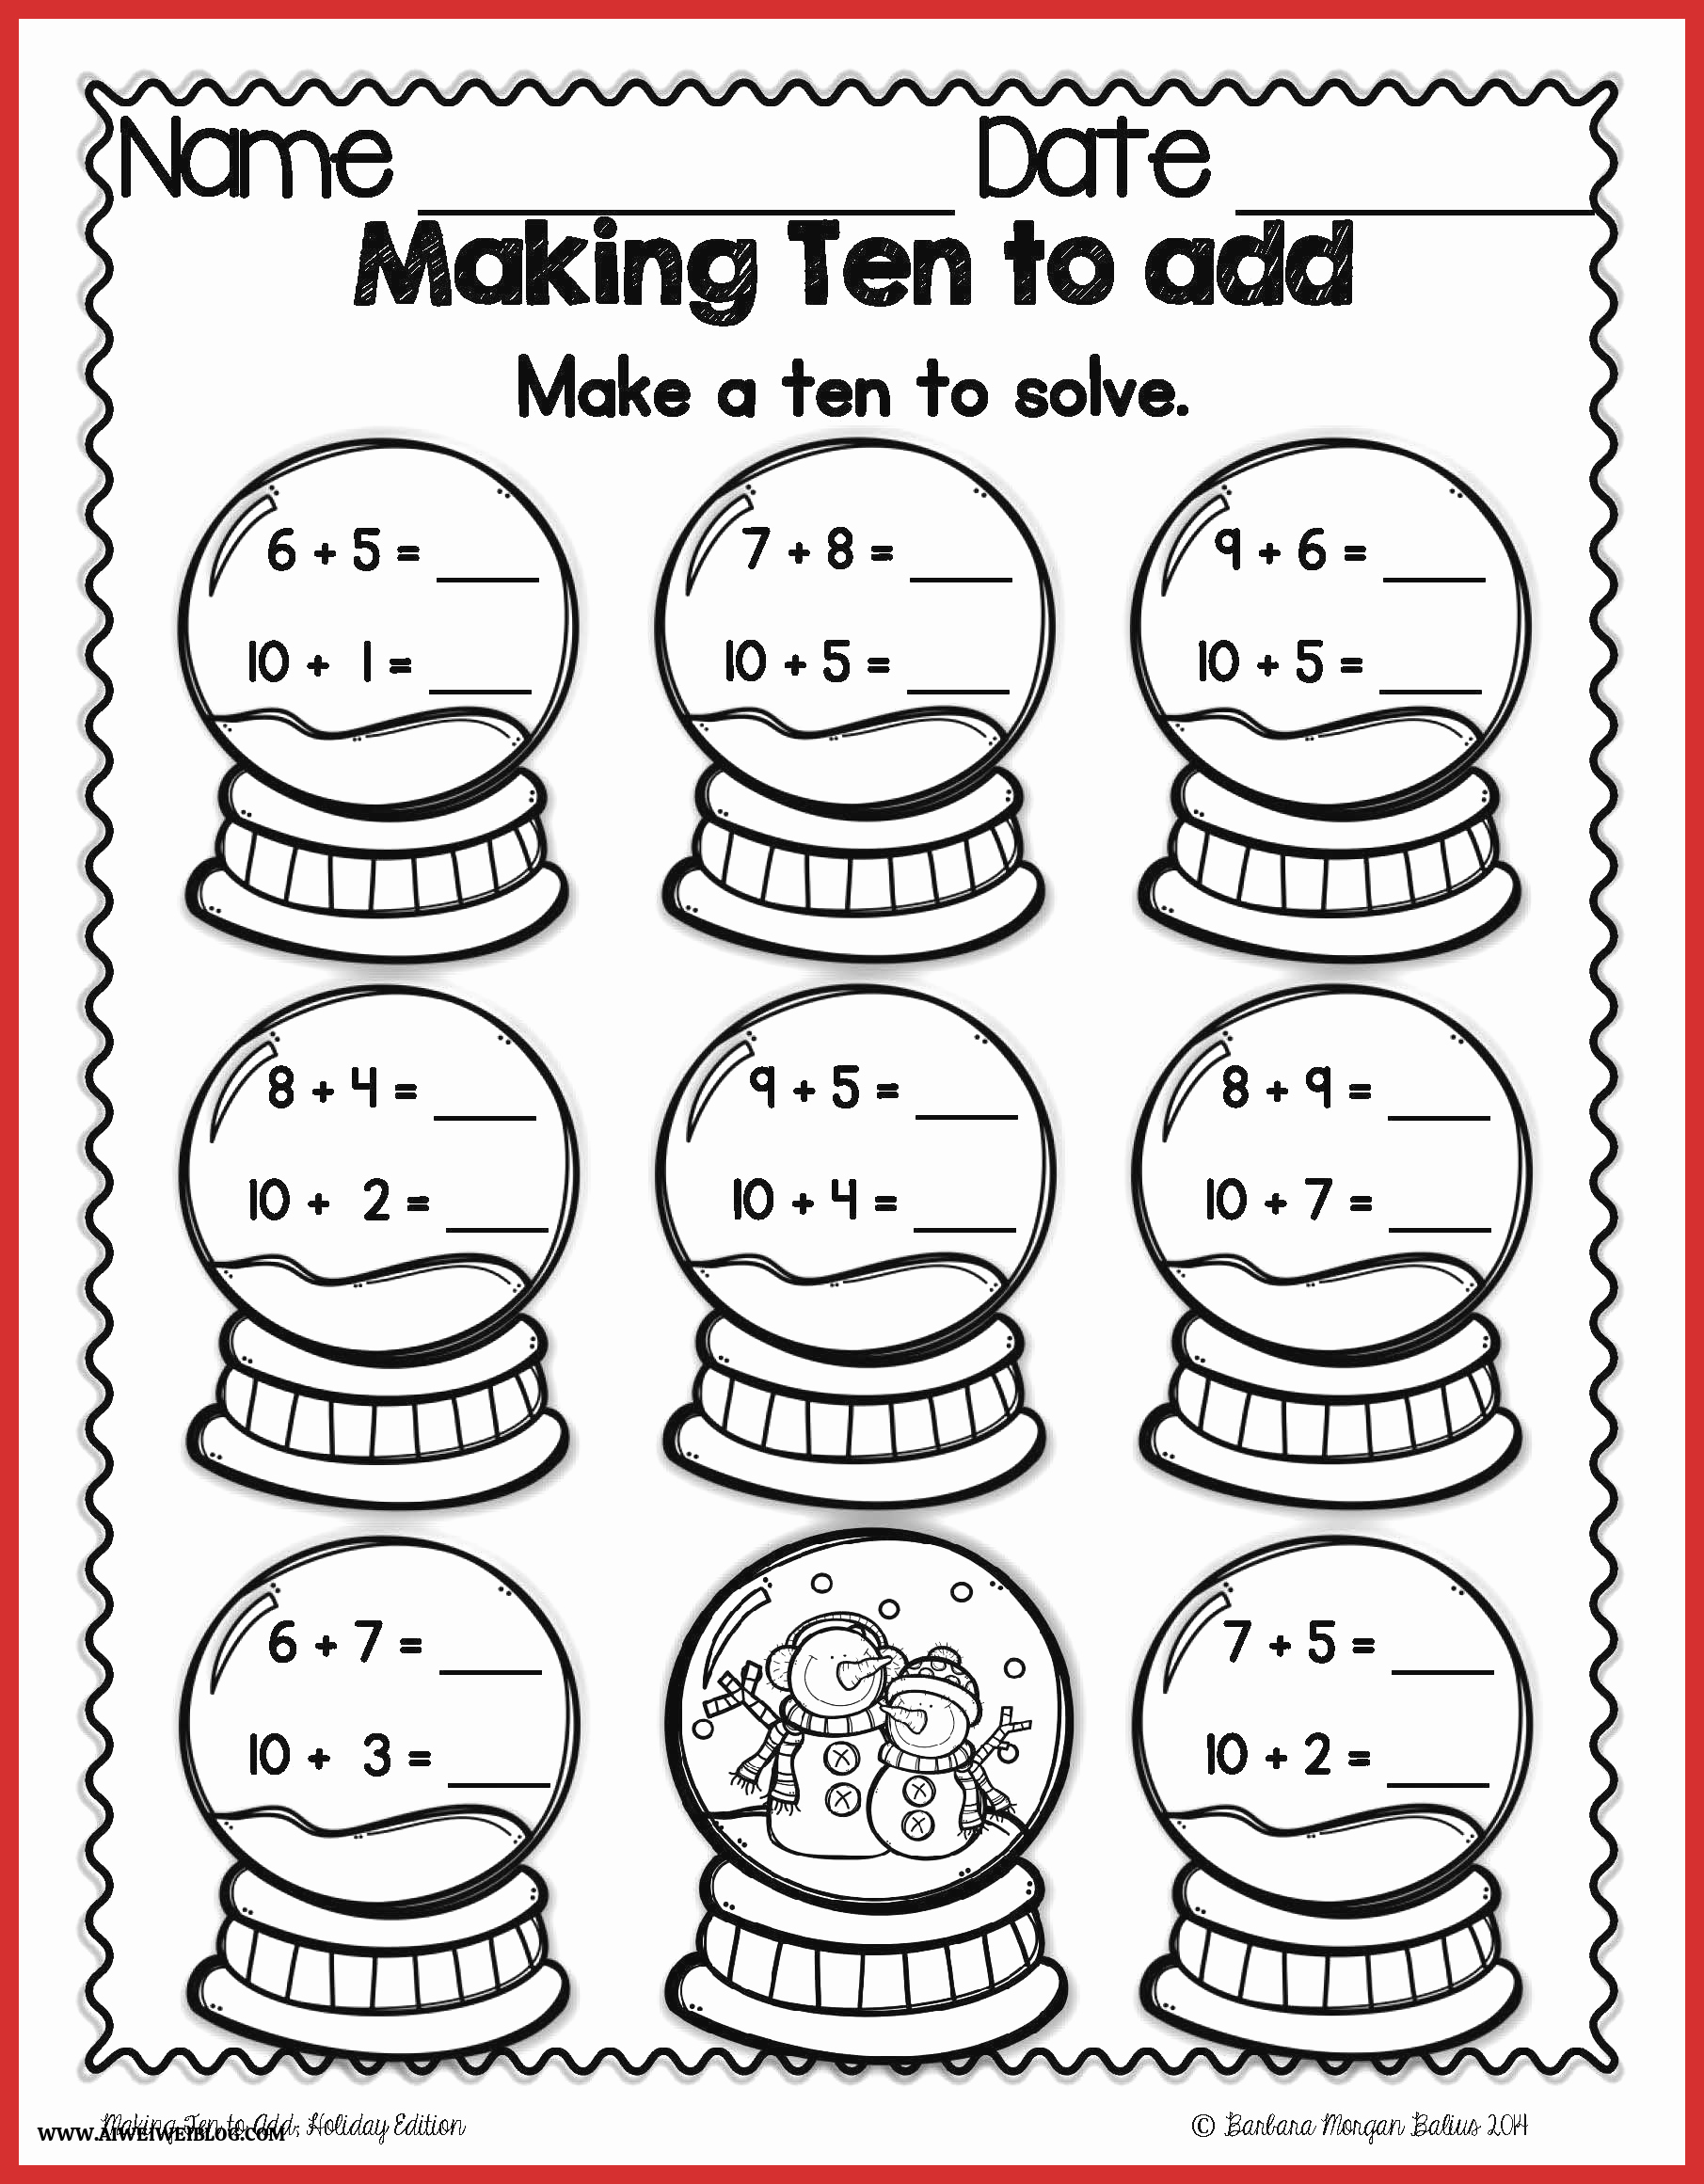 Christmas Worksheets Ideas for Kids Inspirational Worksheet Marvelous 2ndade Activity Worksheets Picture